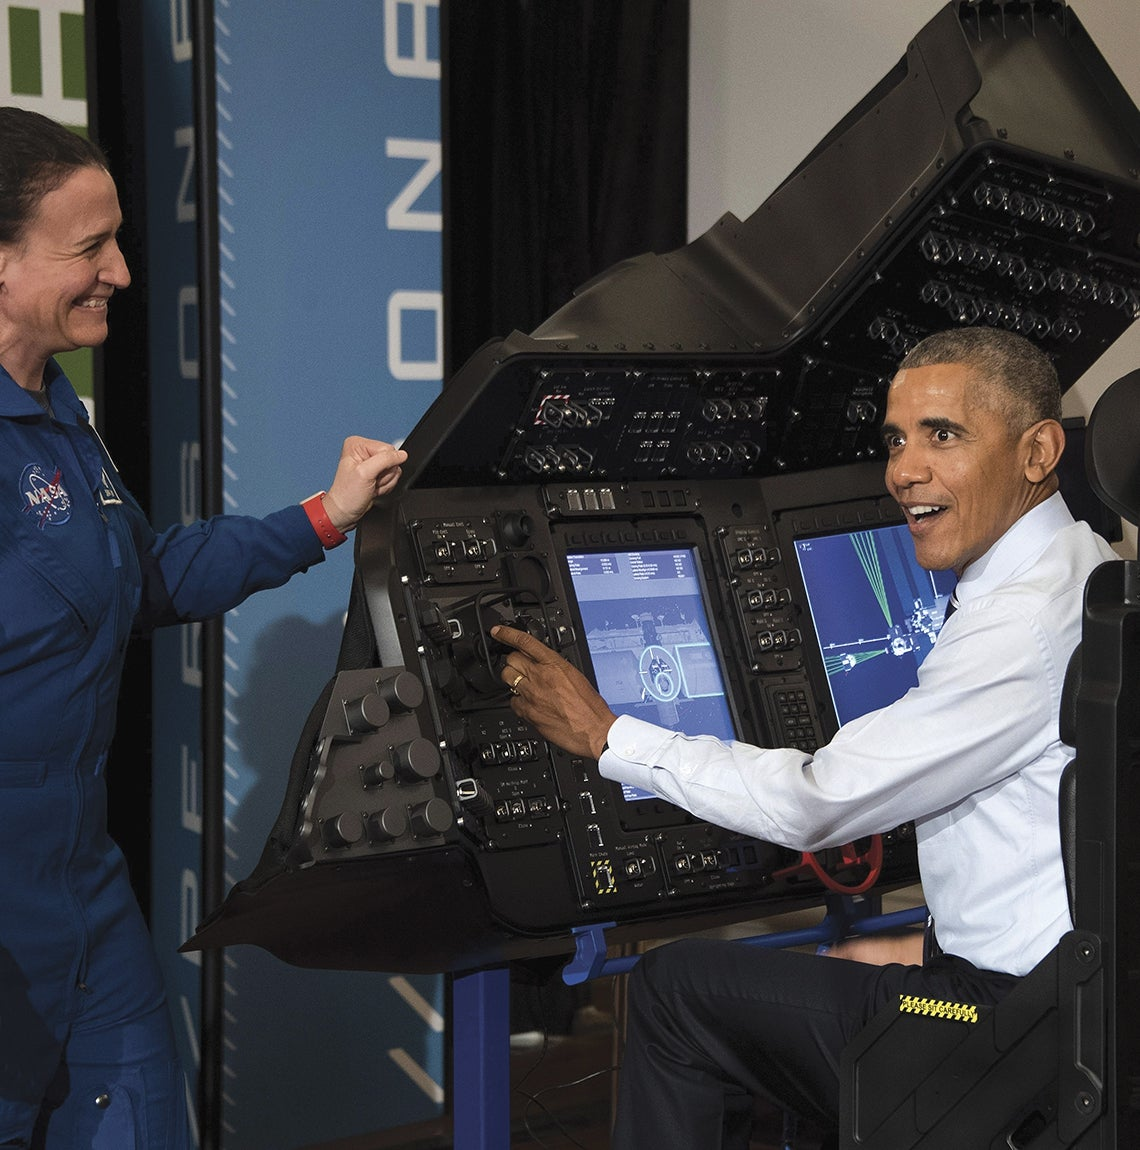 President Obama interacts with NASA equipment.